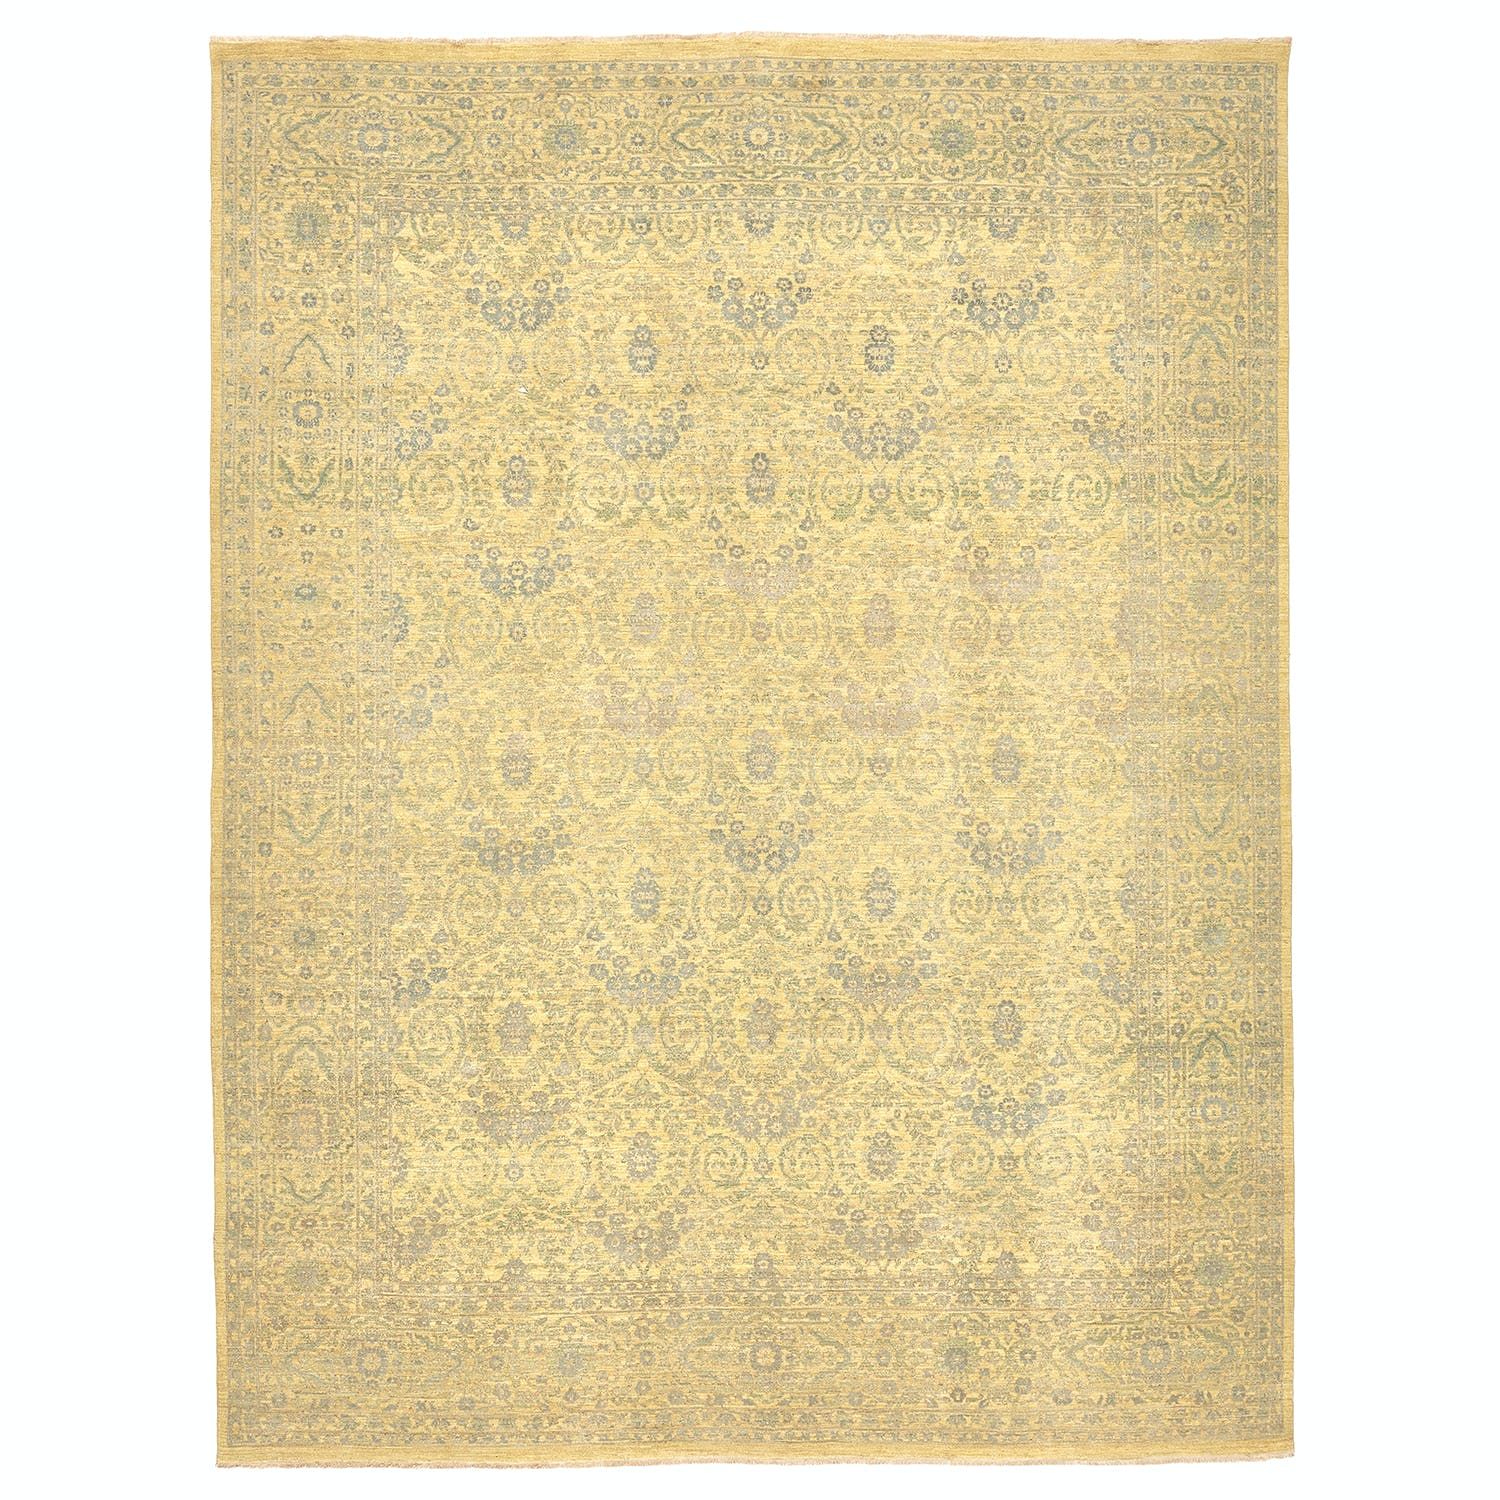 Product Image - Classic Rug - 9'x12'